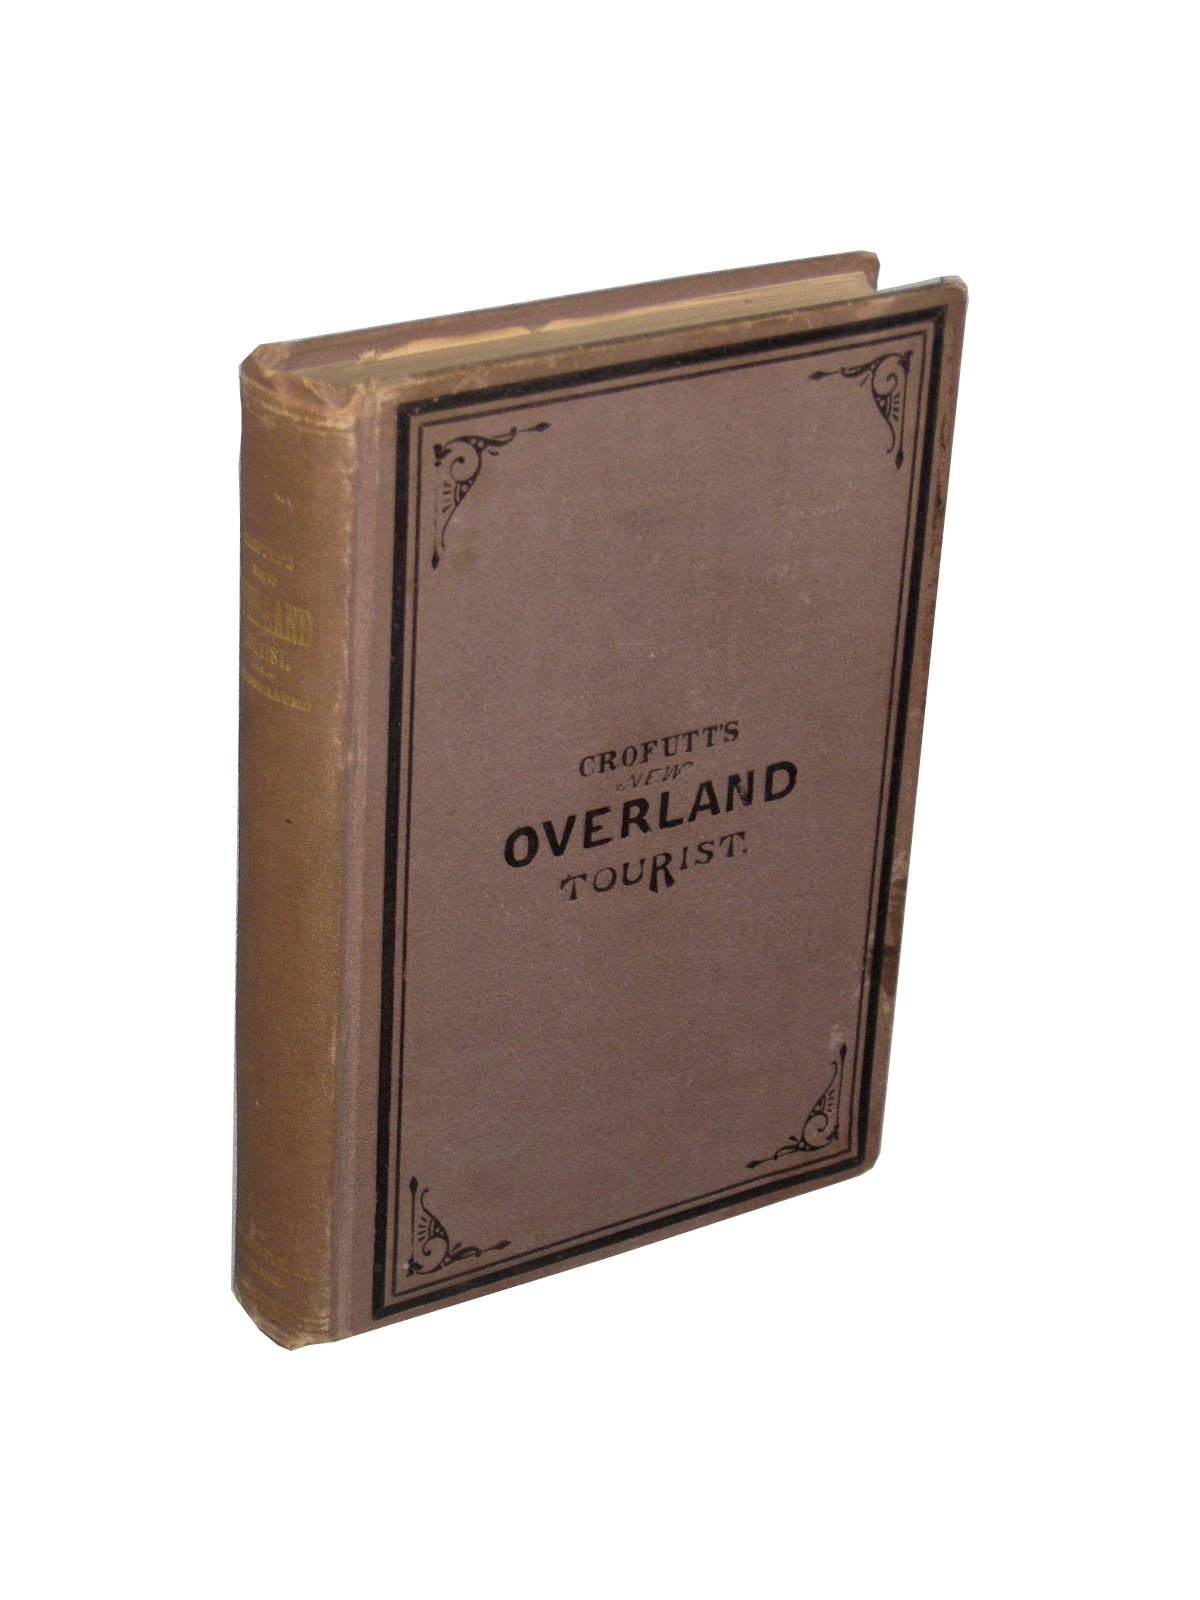 Crofutt's New Overland Tourist and Pacific Coast Guide